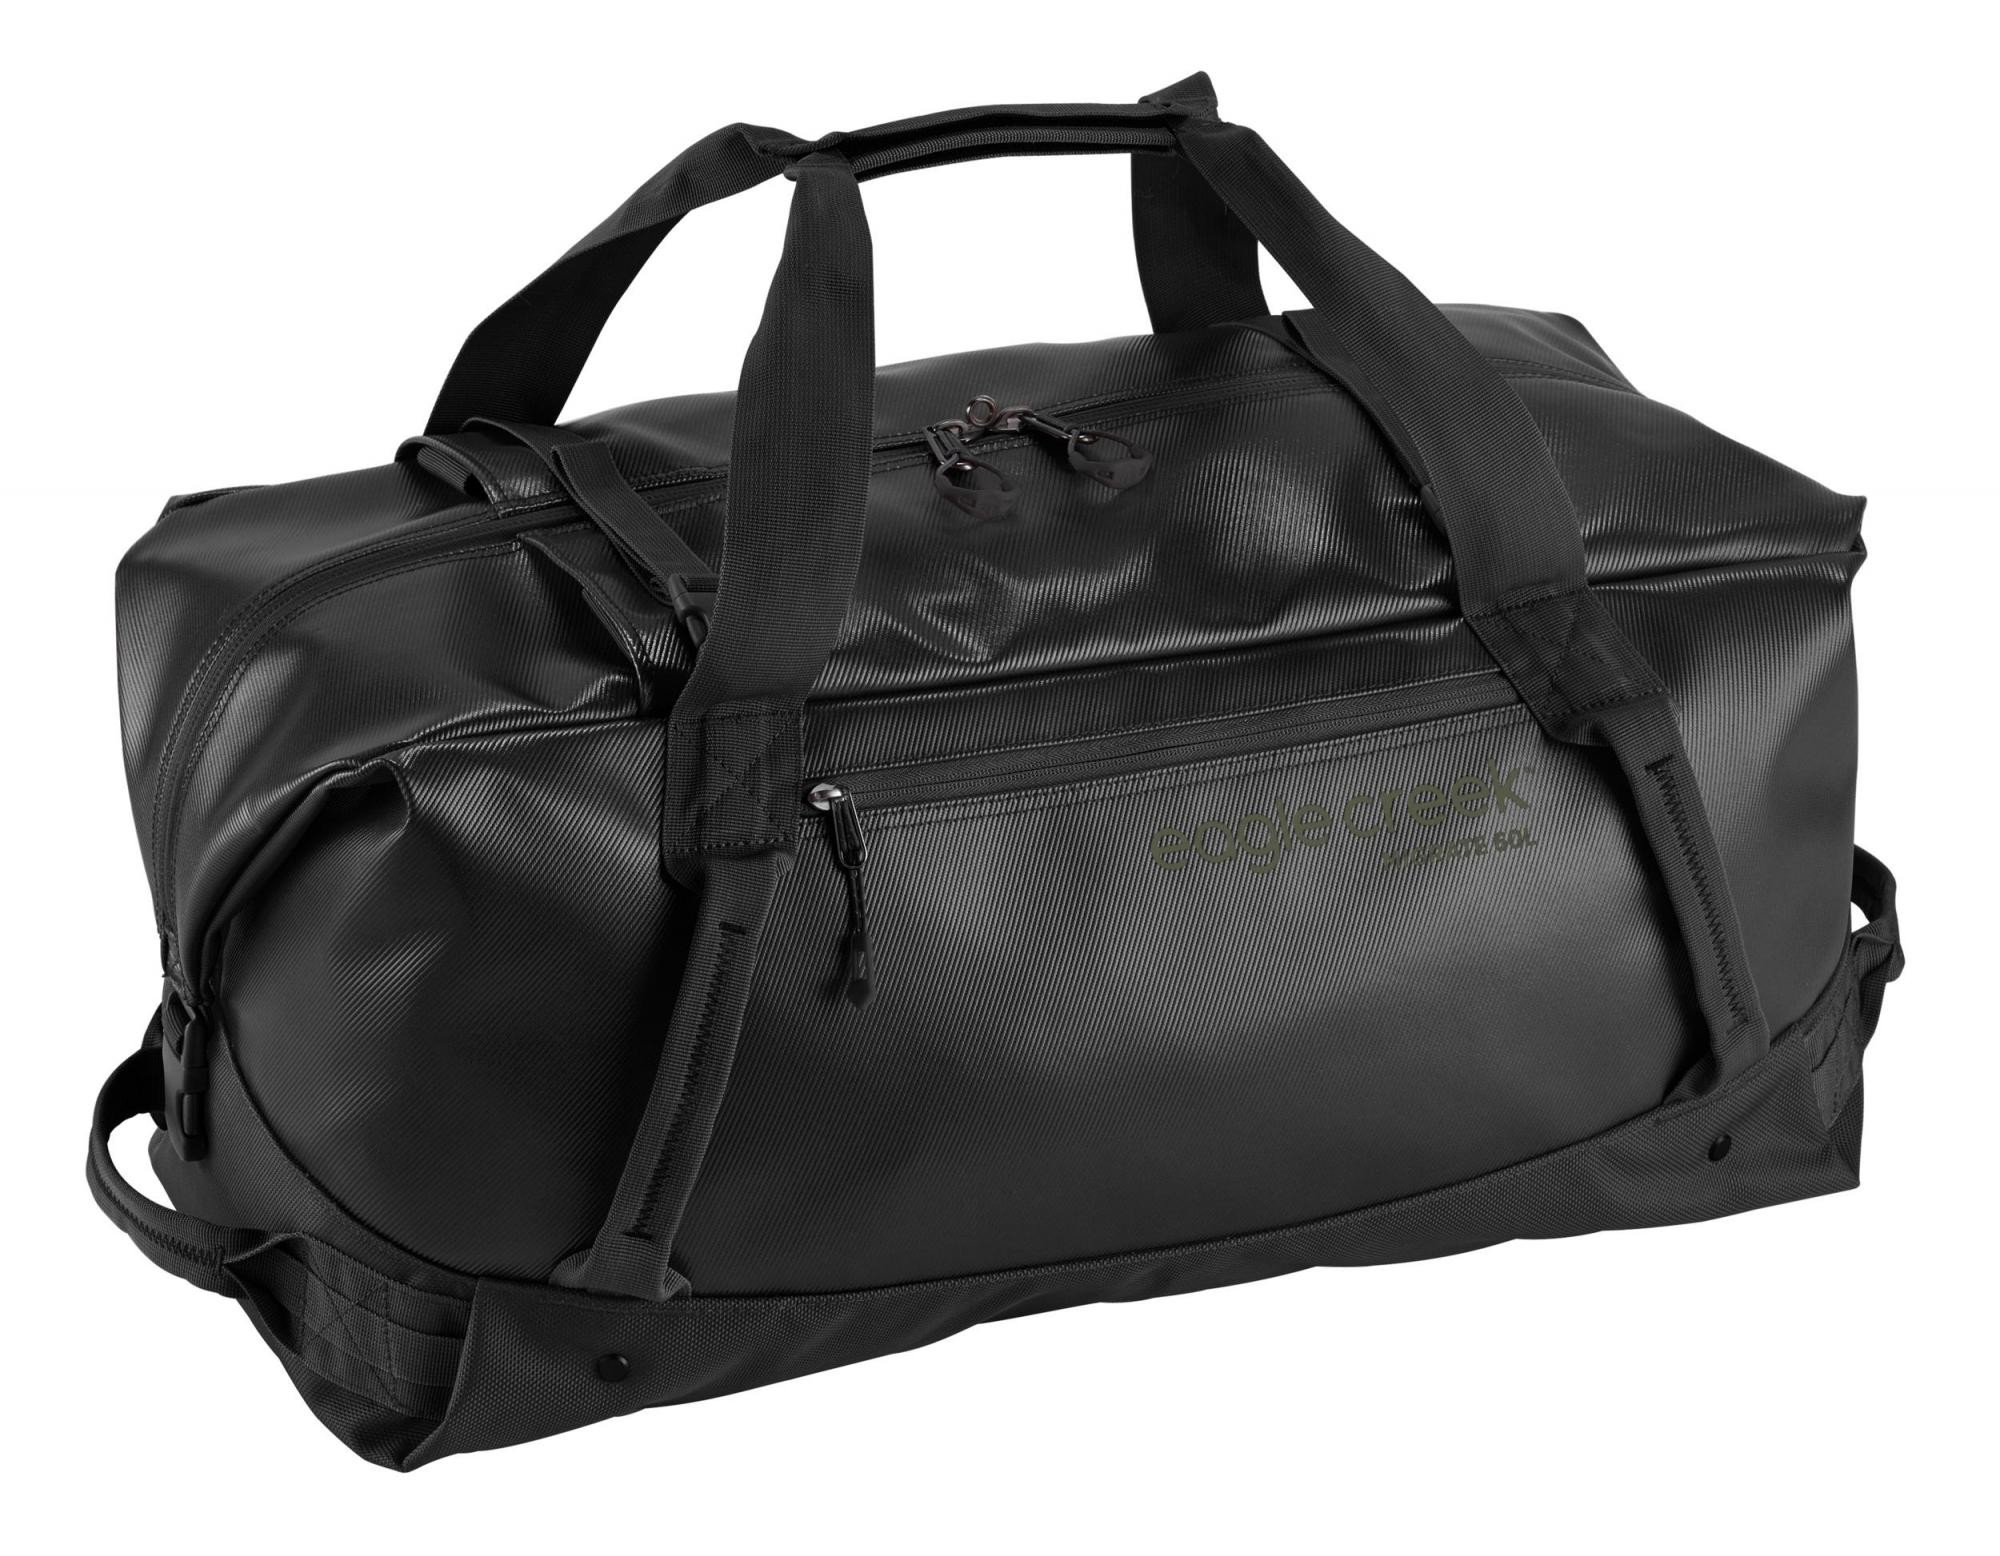 Eagle creek migrate duffel 60L black